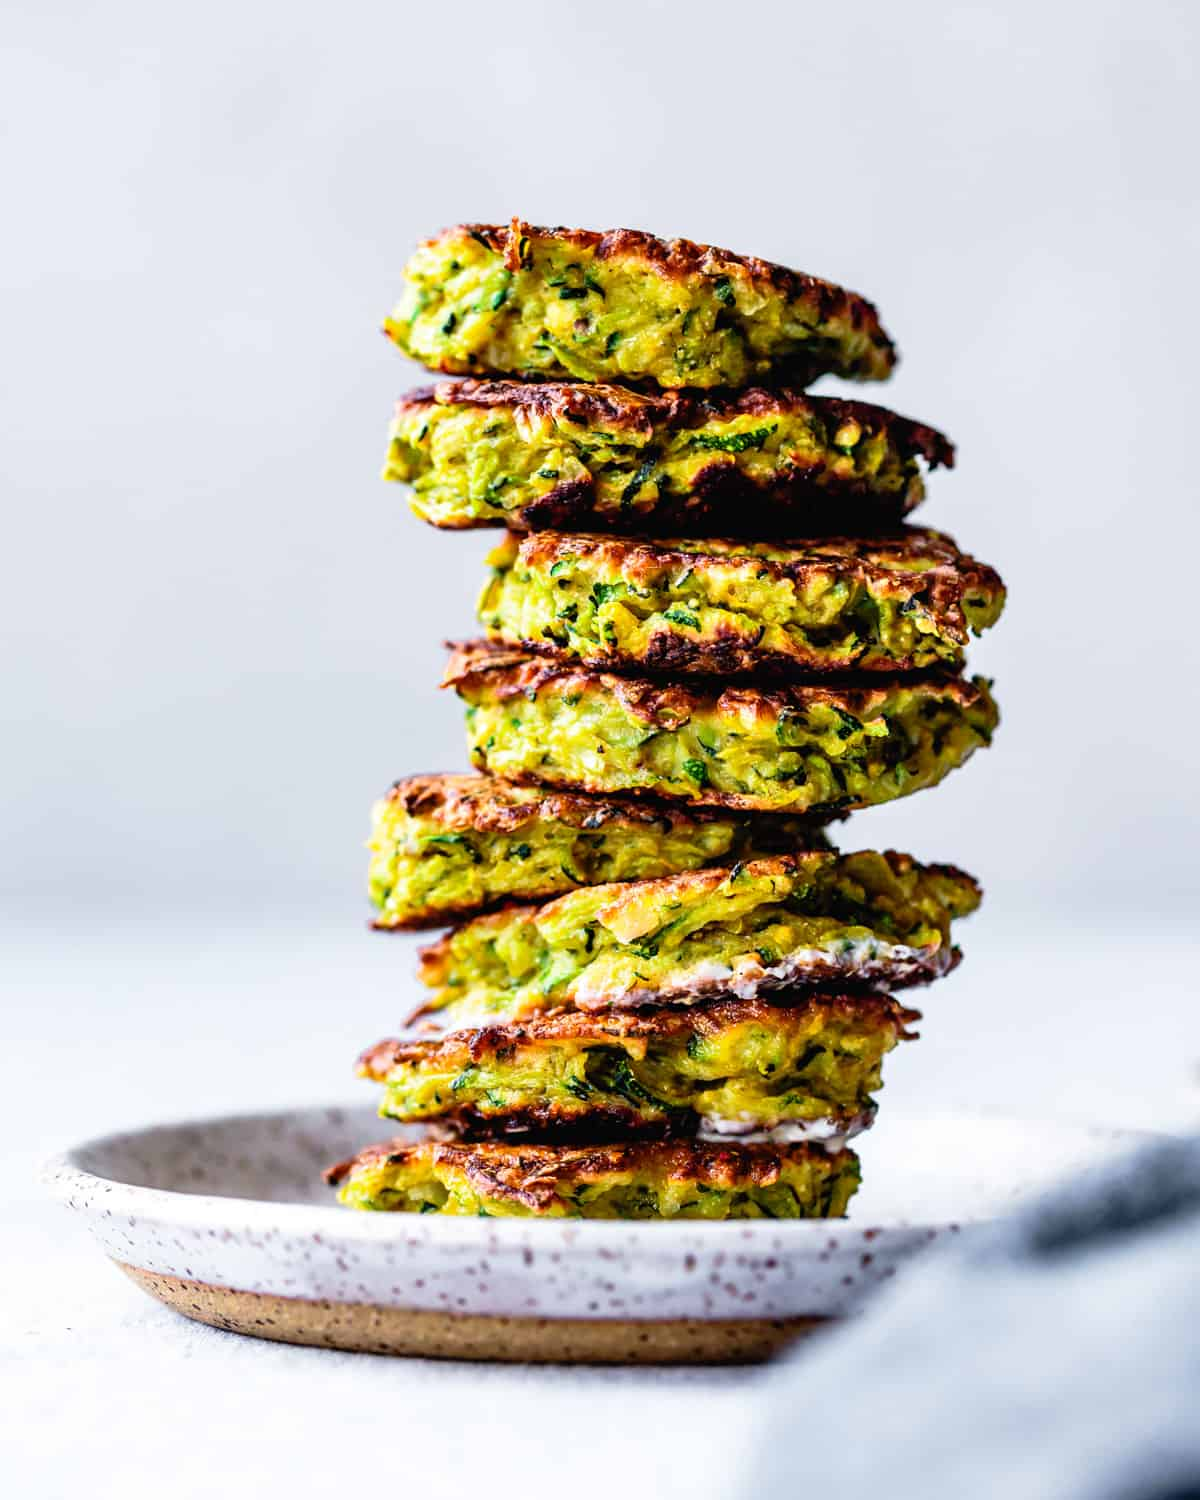 Stack of Gluten-Free Zucchini Fritters